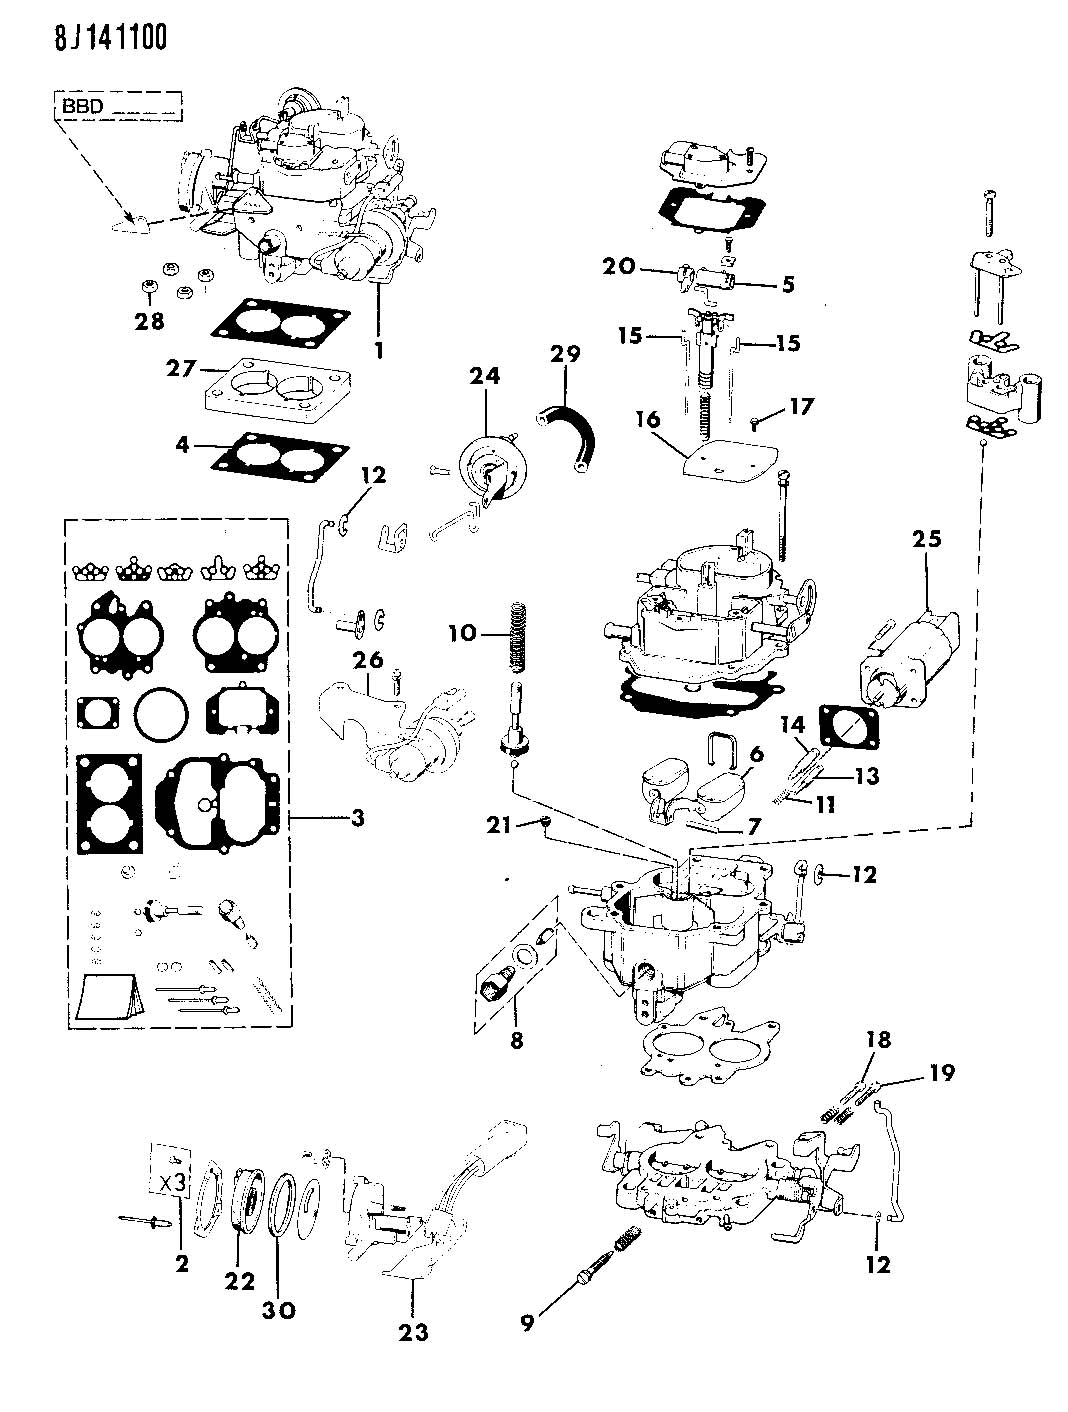 1987 jeep wrangler 4 2l engine diagram  1987  free engine